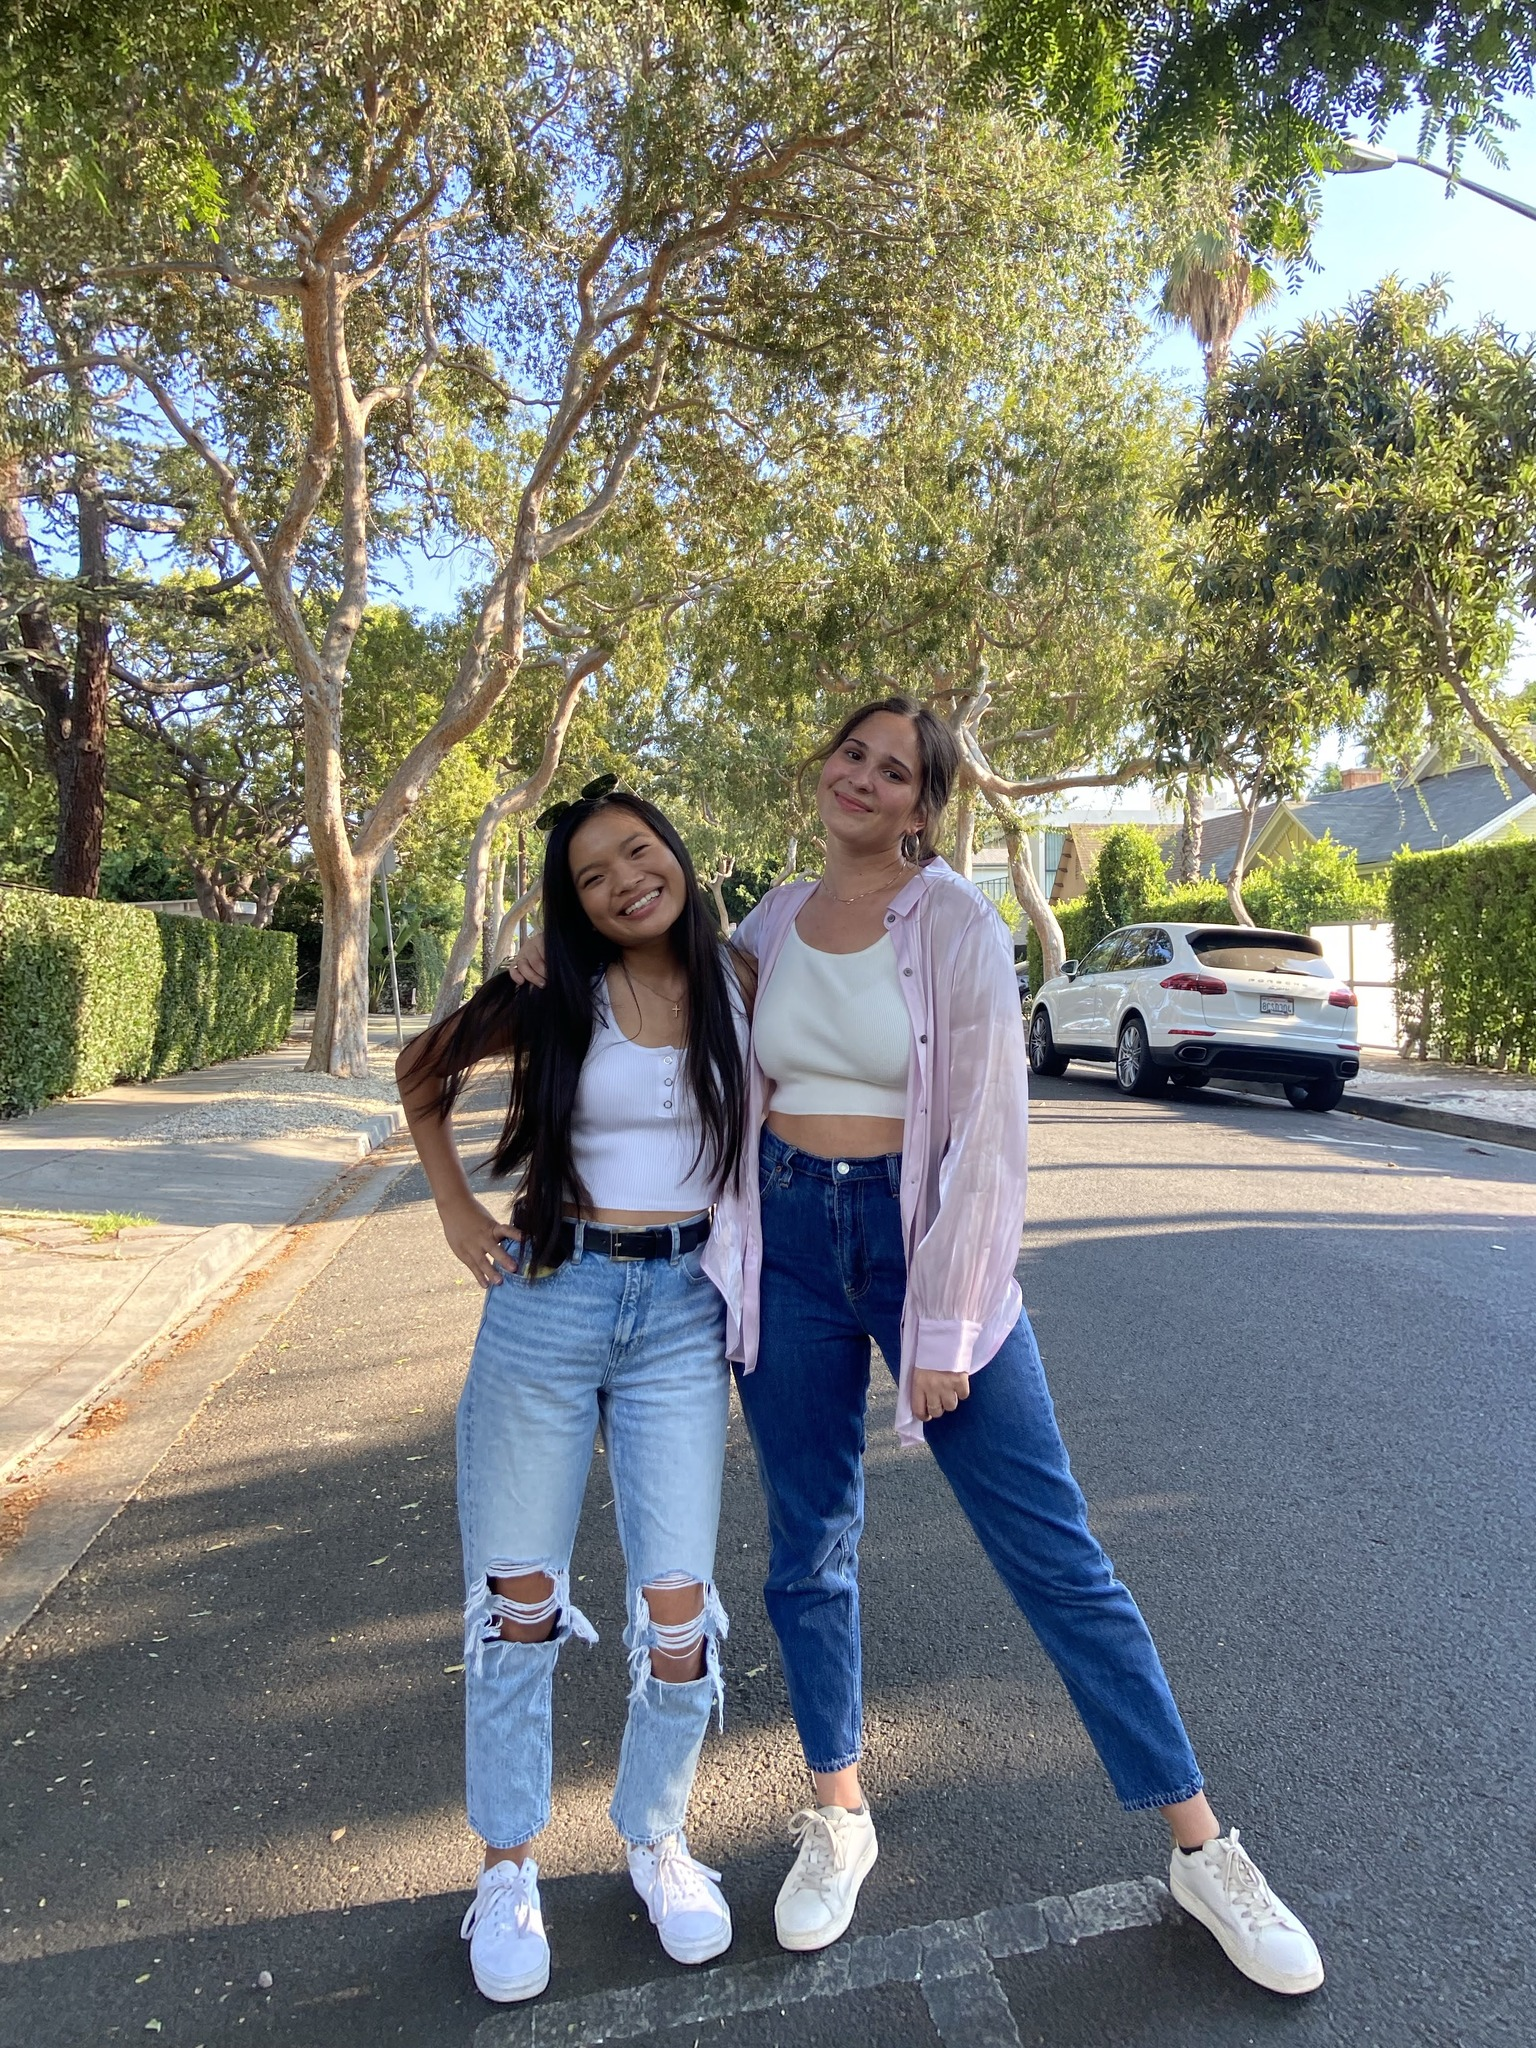 Maggie and her roommate standing in the street at La Mirada.